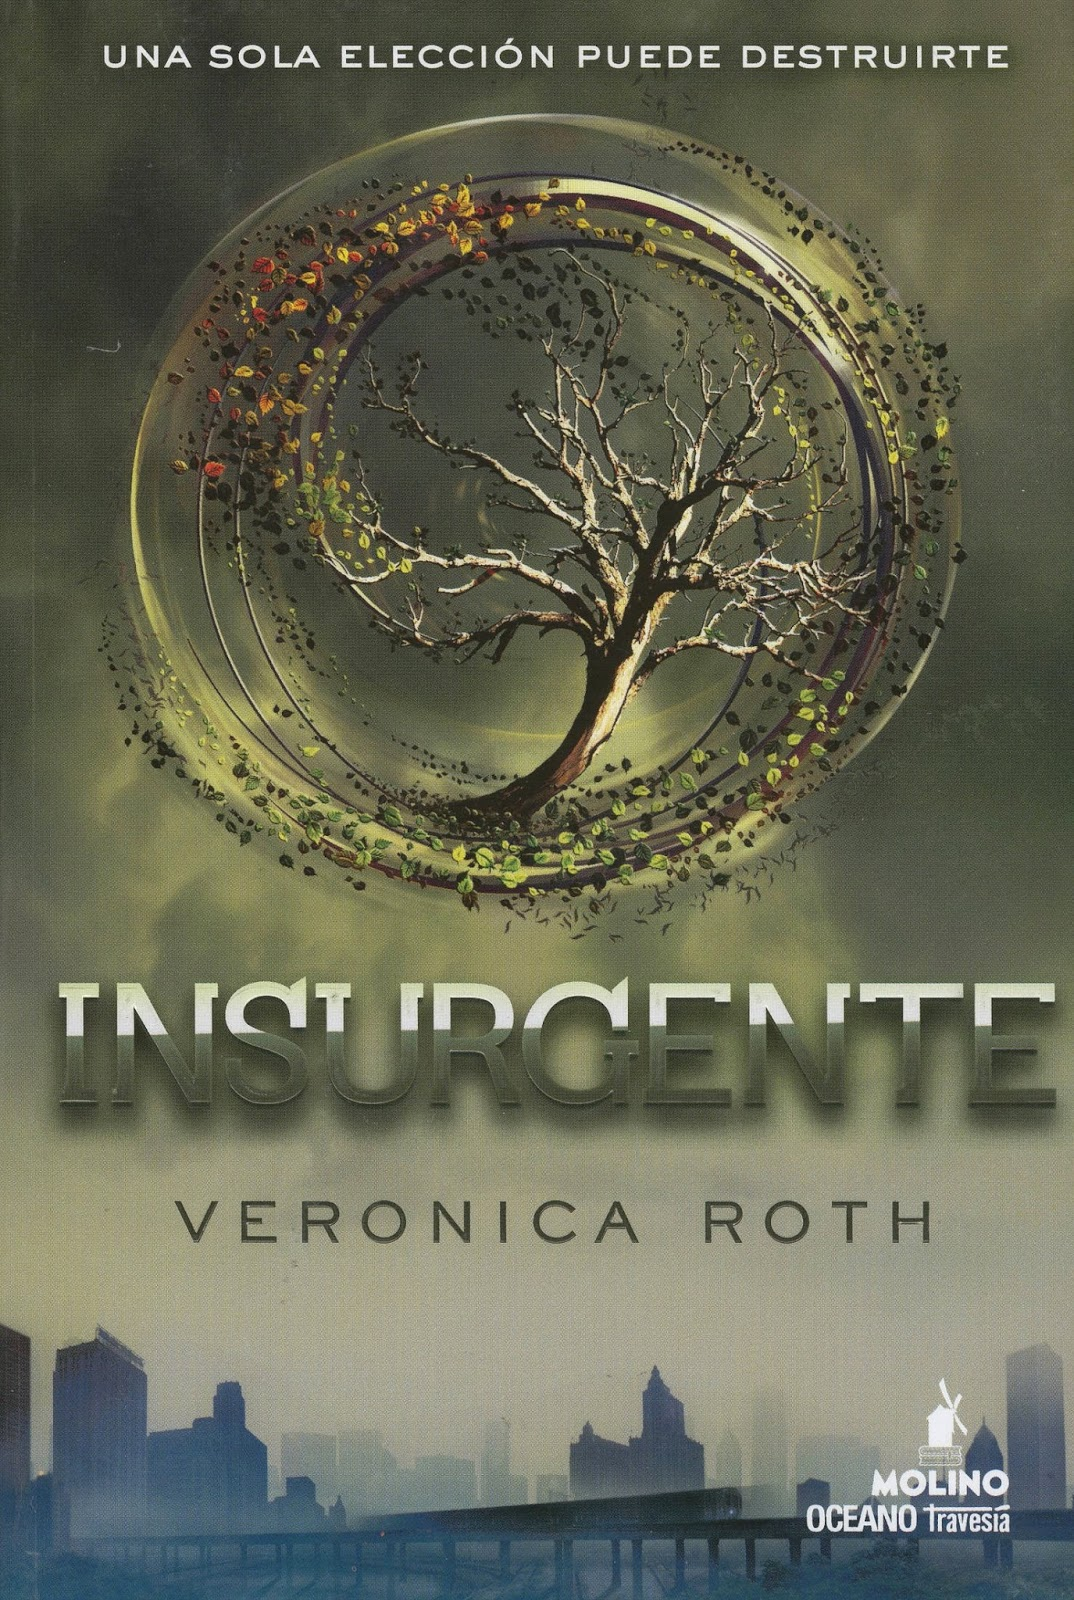 Veronica roth simple english wikipedia, the free encyclopedia.